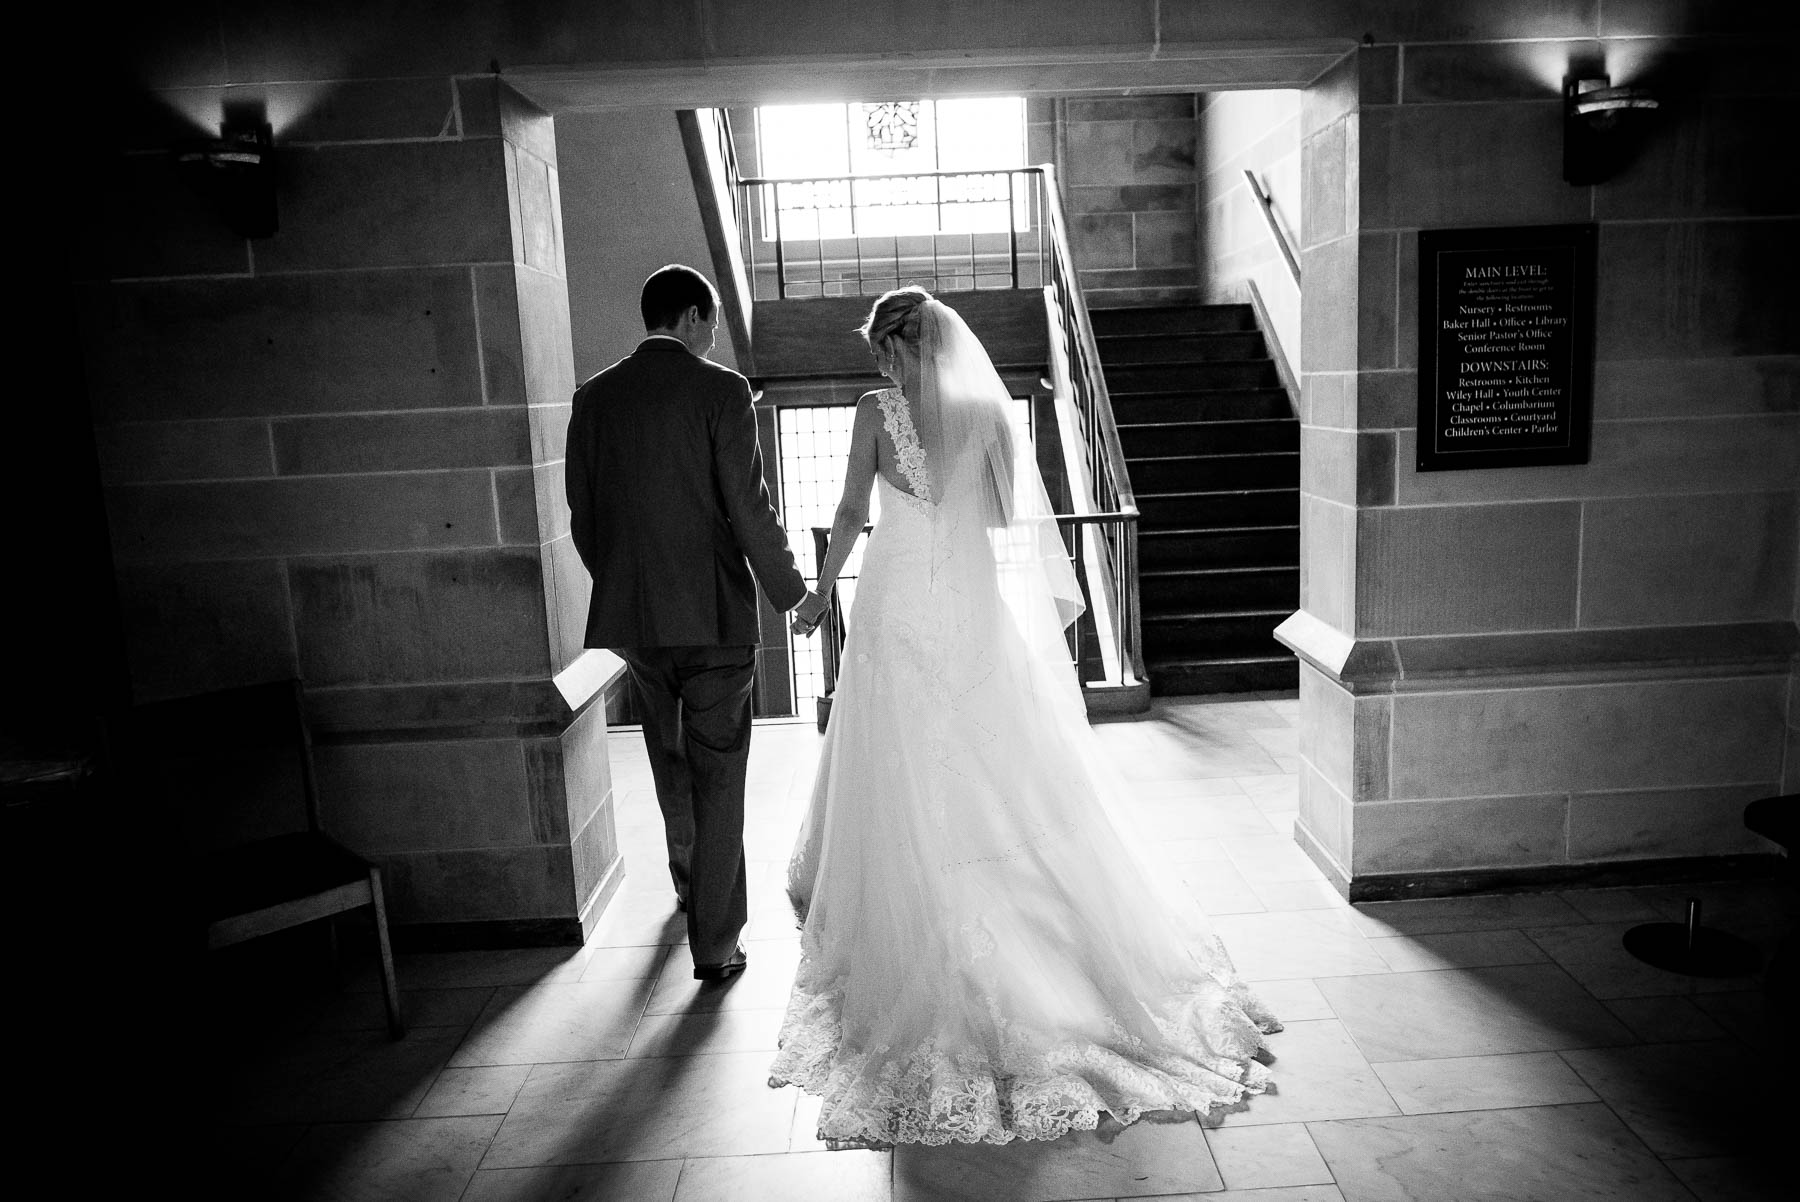 Bride and groom spend a moment alone after their wedding ceremony at Baker Memorial United Methodist Church in St. Charles